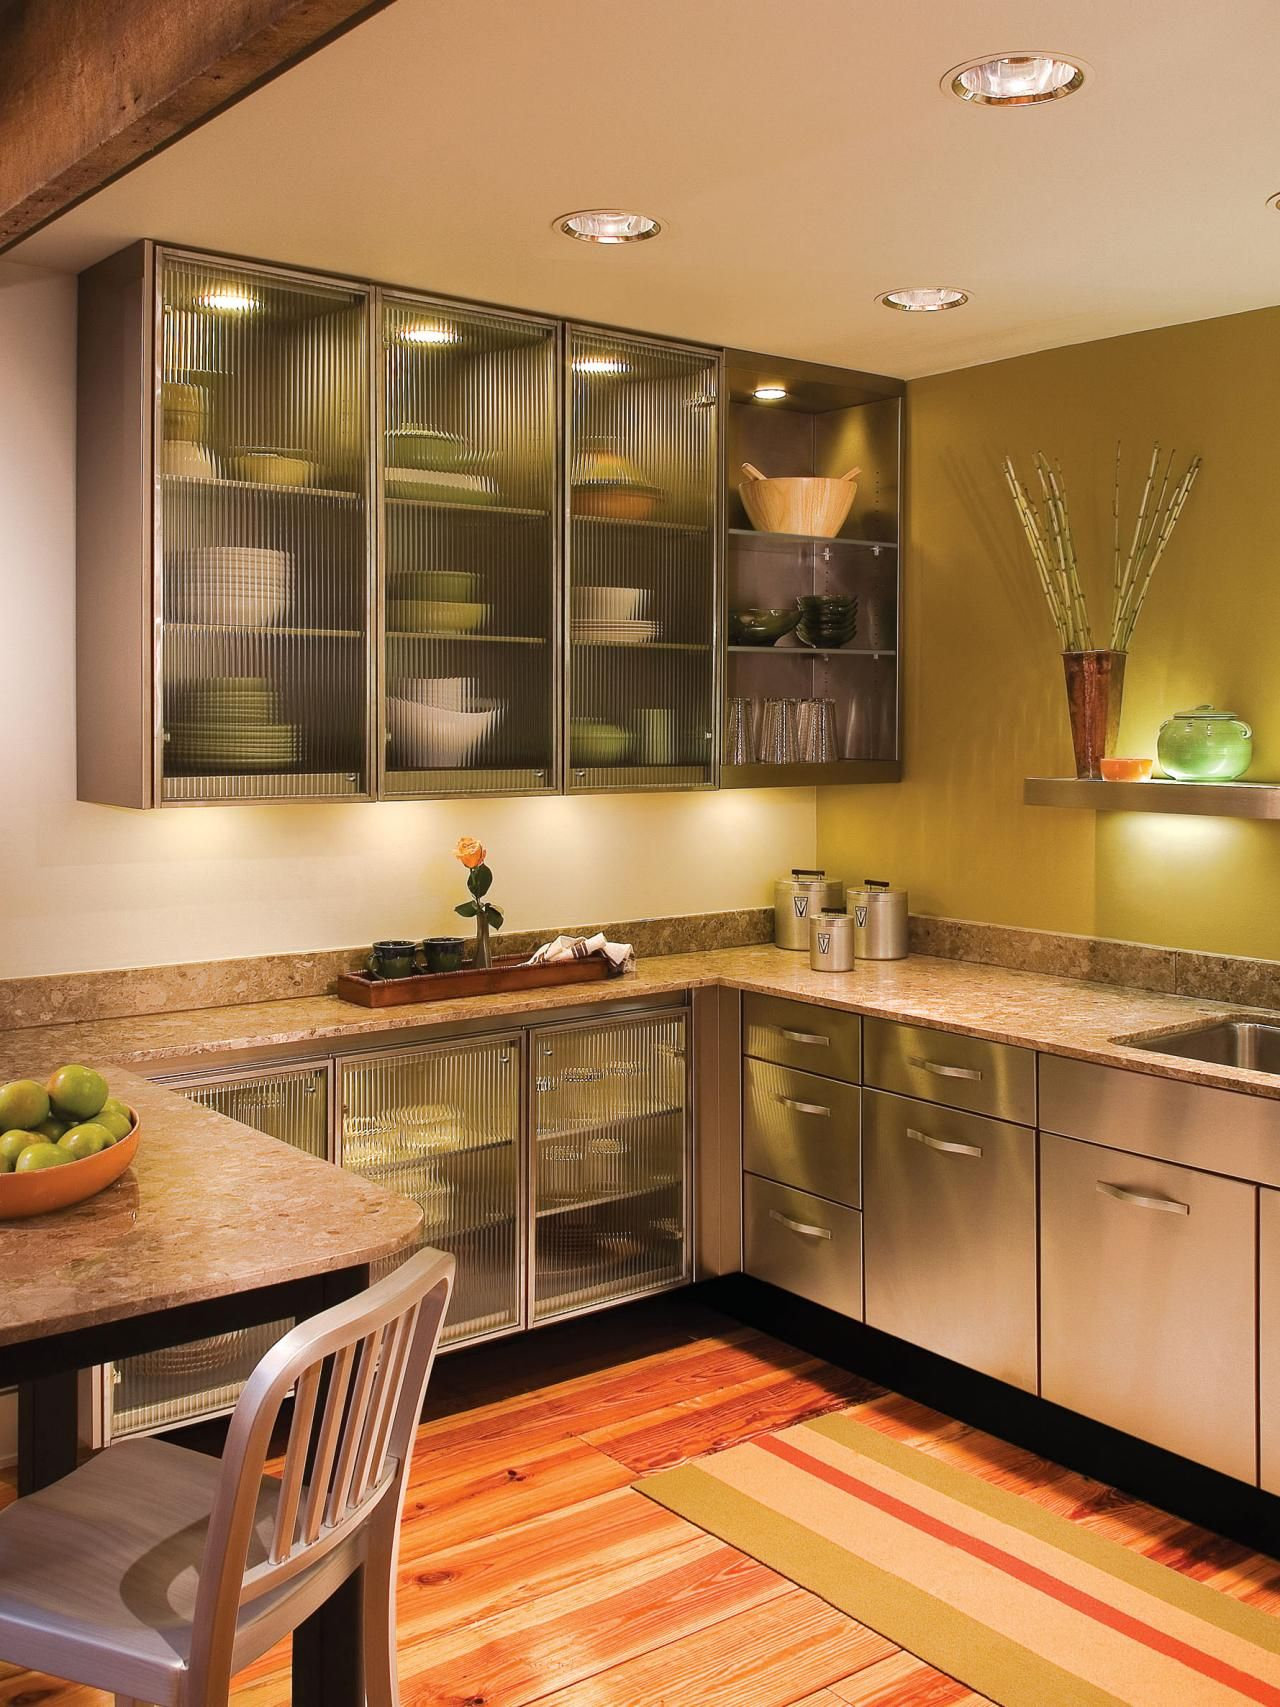 Neutral countertops stainless steel cabinets an exposed wood